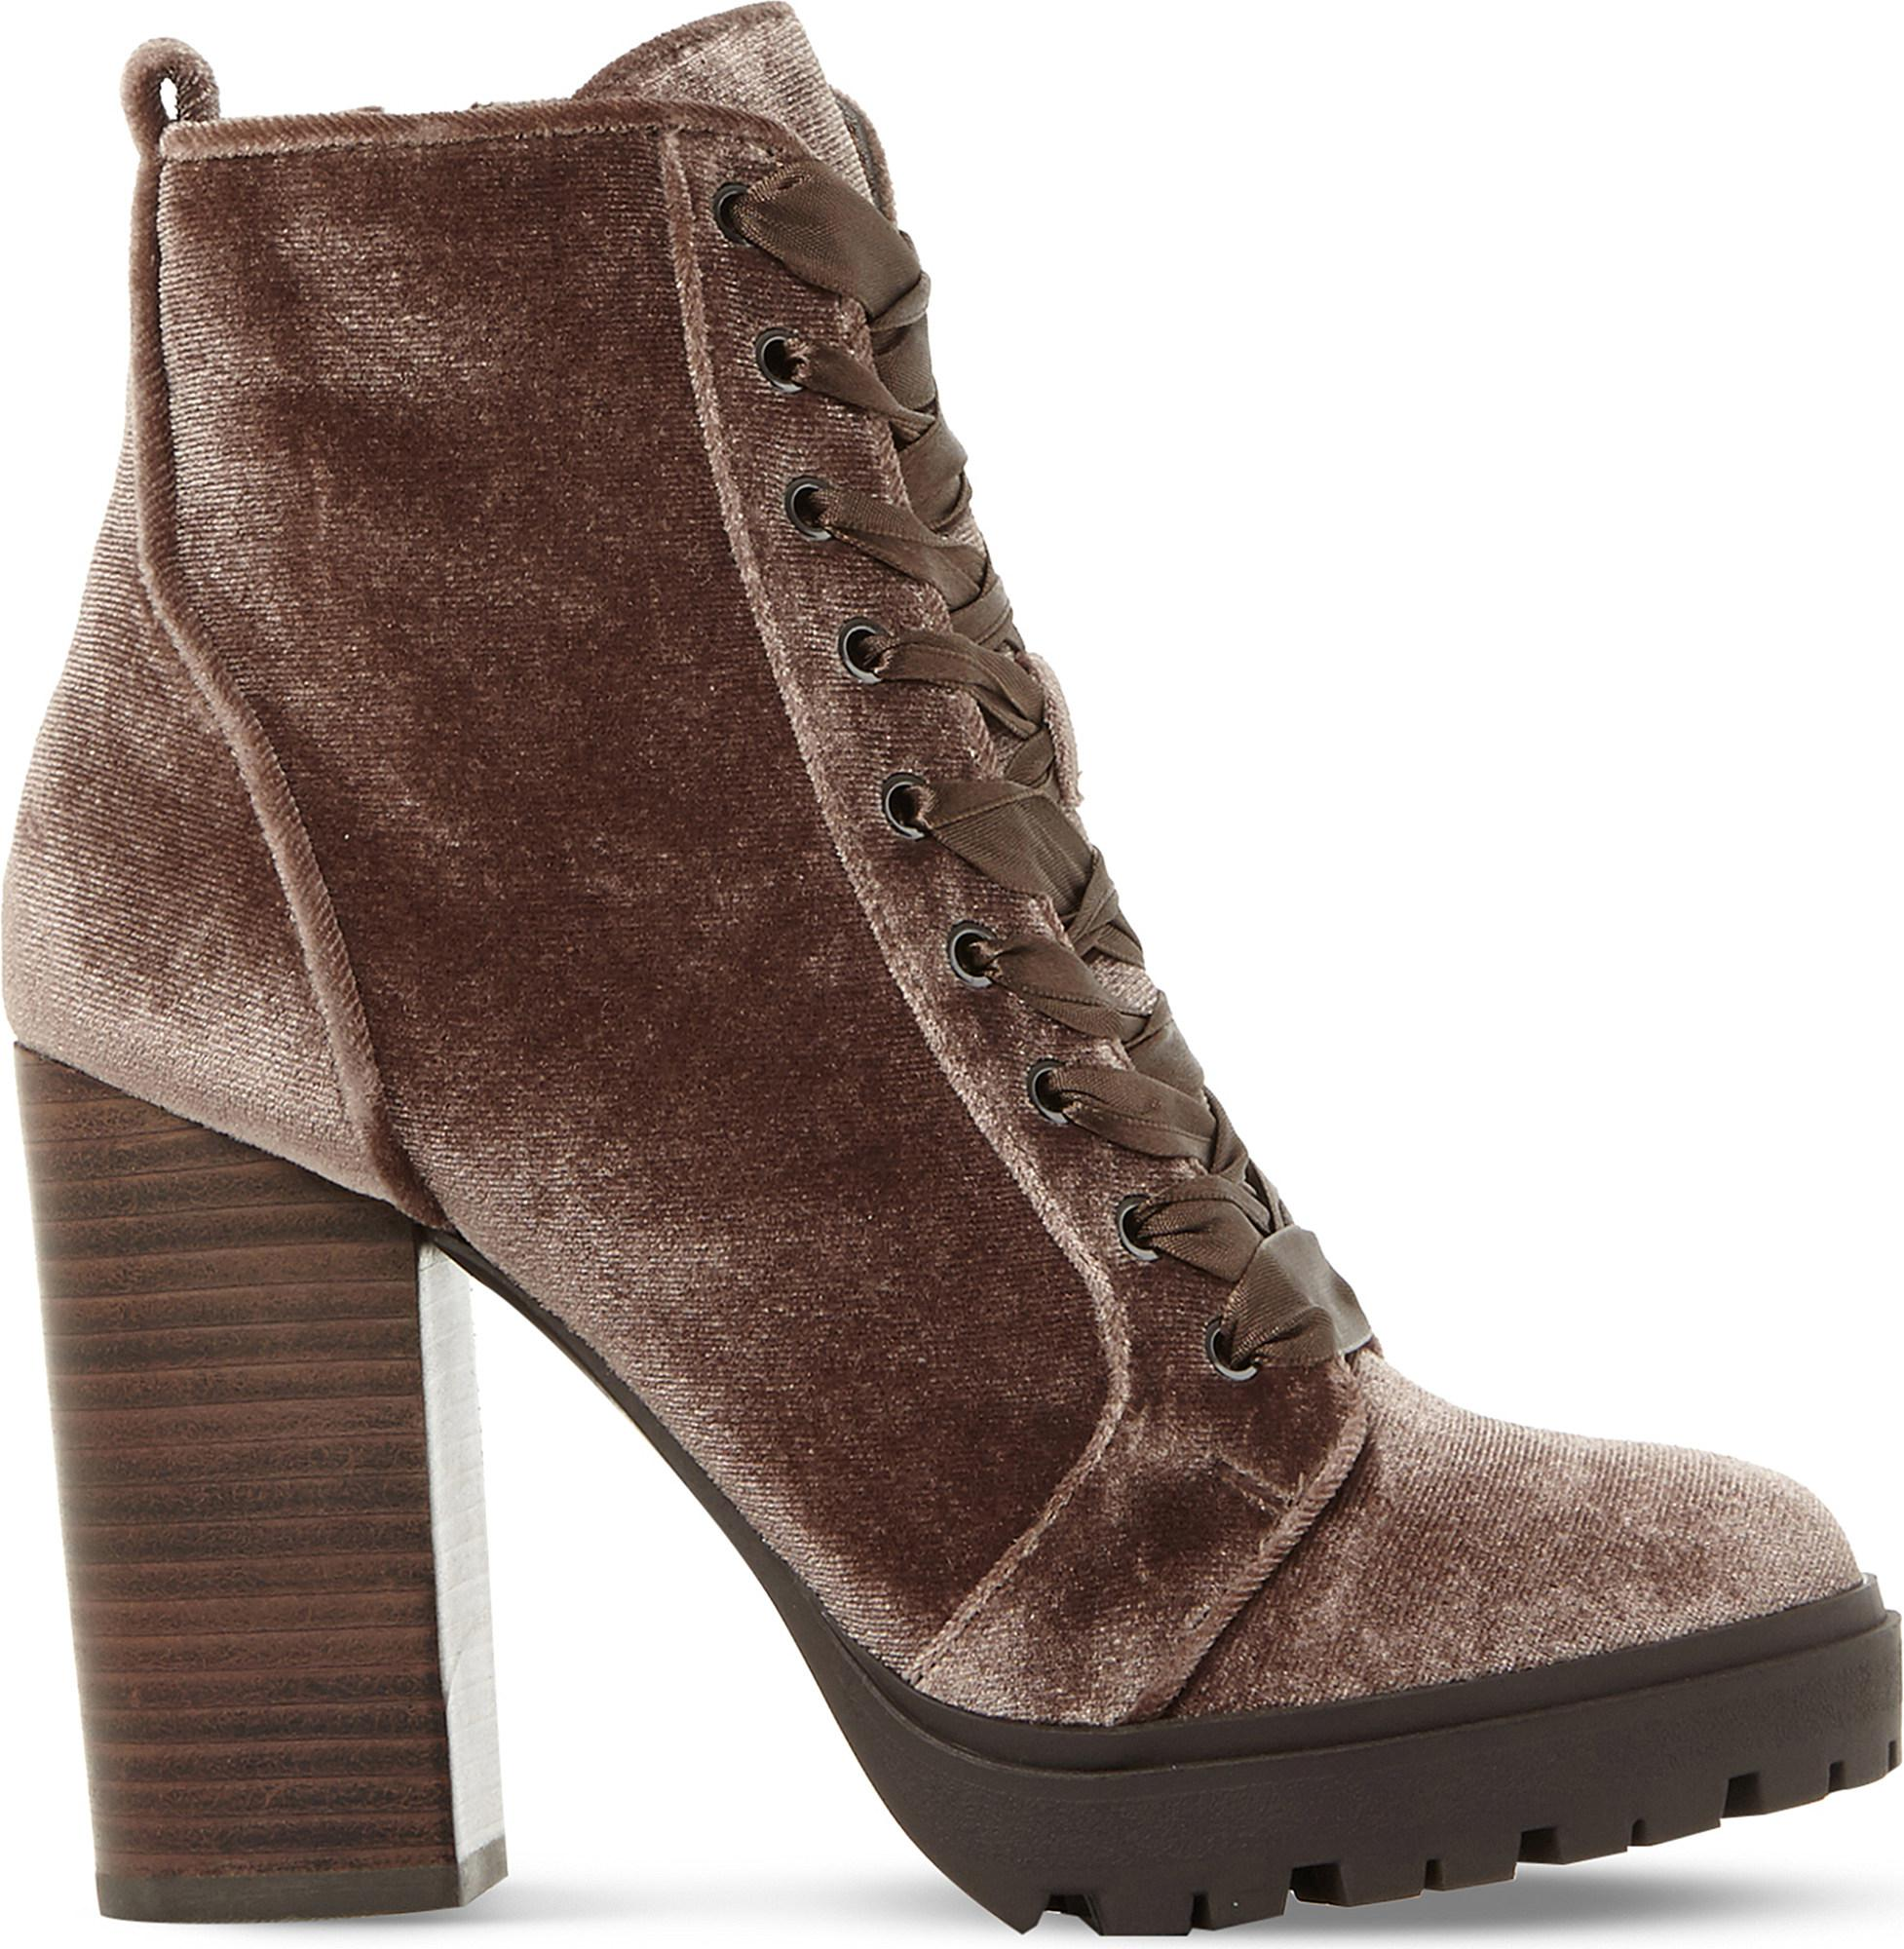 bbed6938a08 Steve Madden Laurie Velvet Heeled Ankle Boots in Brown - Save 40.0 ...